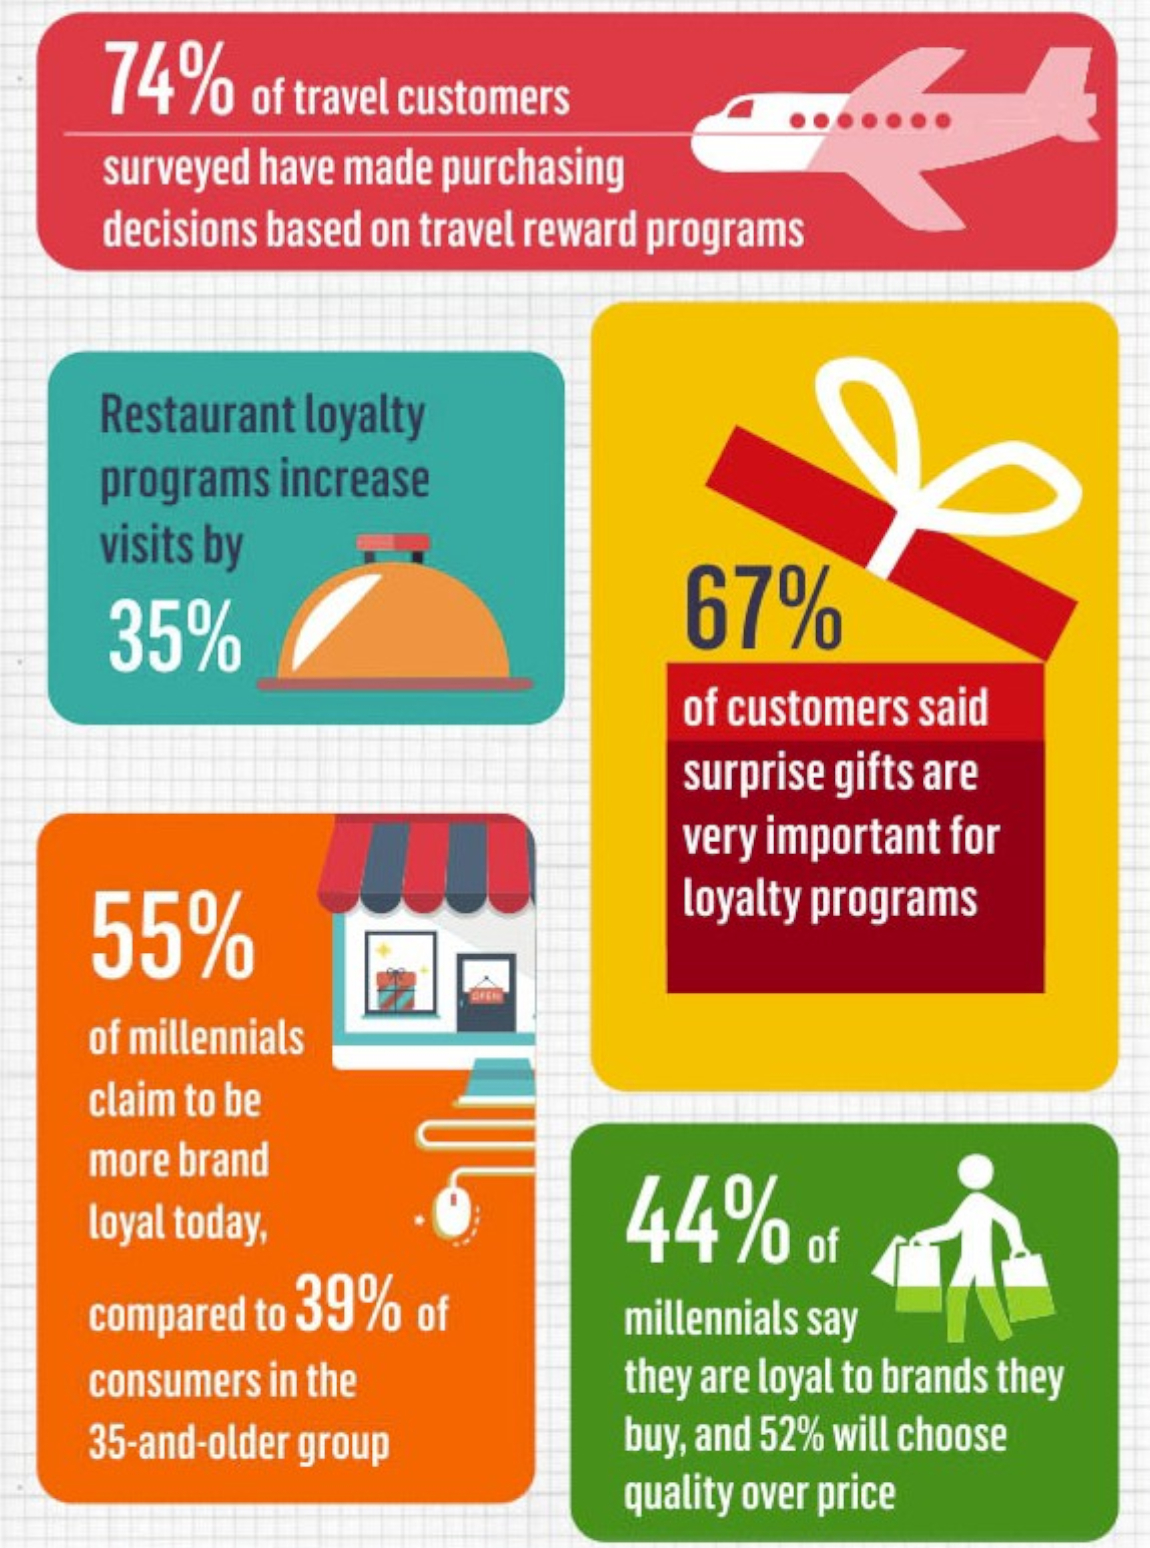 Loyalty programs encourage bigger, more frequent purchases.